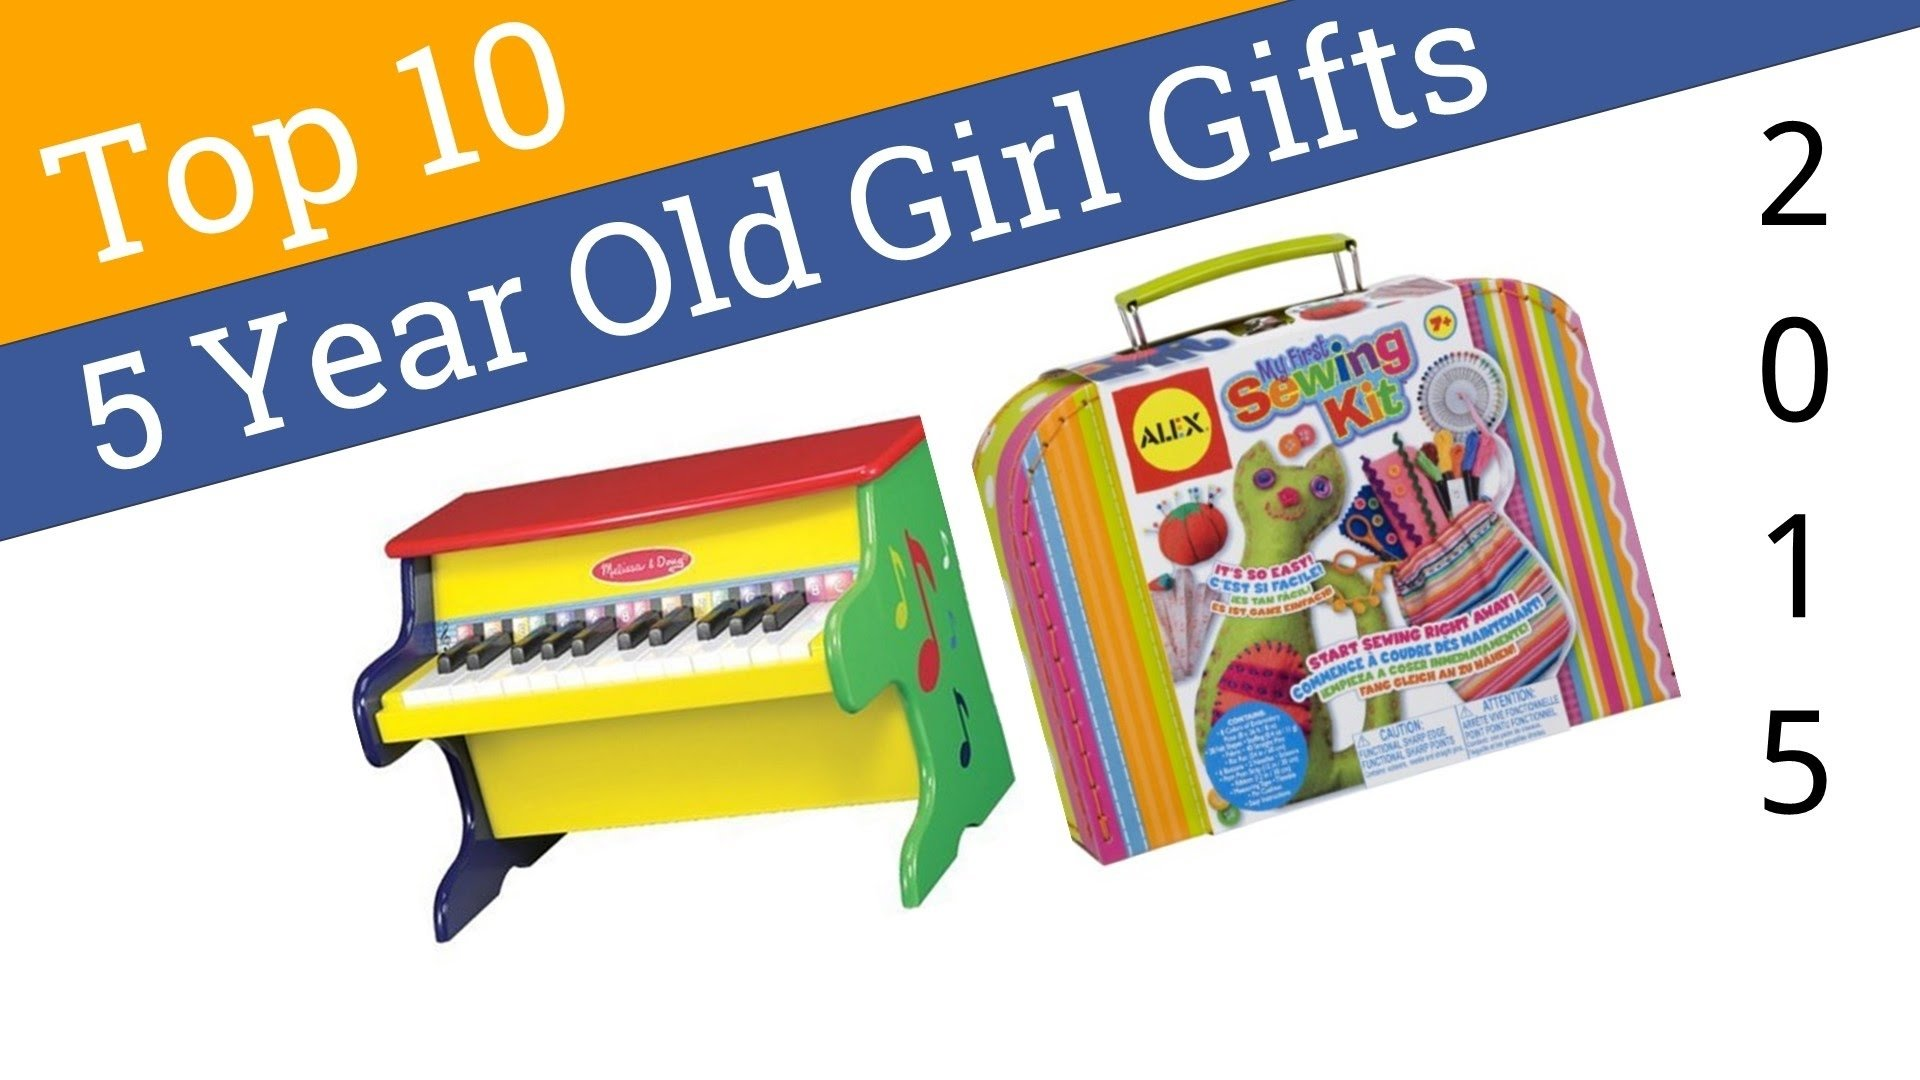 10 Trendy Gift Ideas 5 Year Old Girl 10 best 5 year old girl gifts 2015 youtube 1 2020